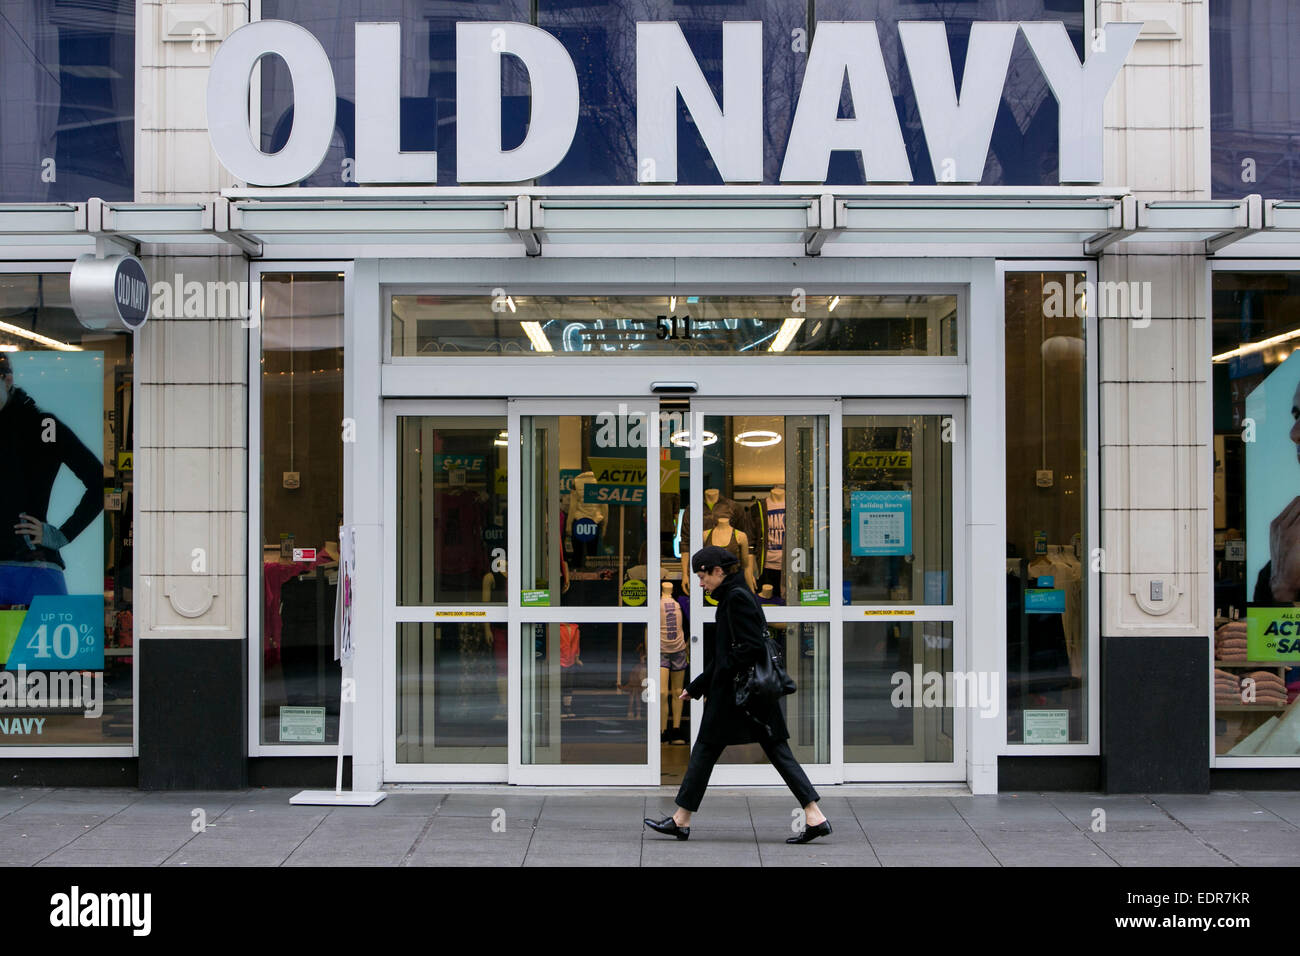 A Old Navy Clothing Retail Store In Downtown Seattle, Washington.